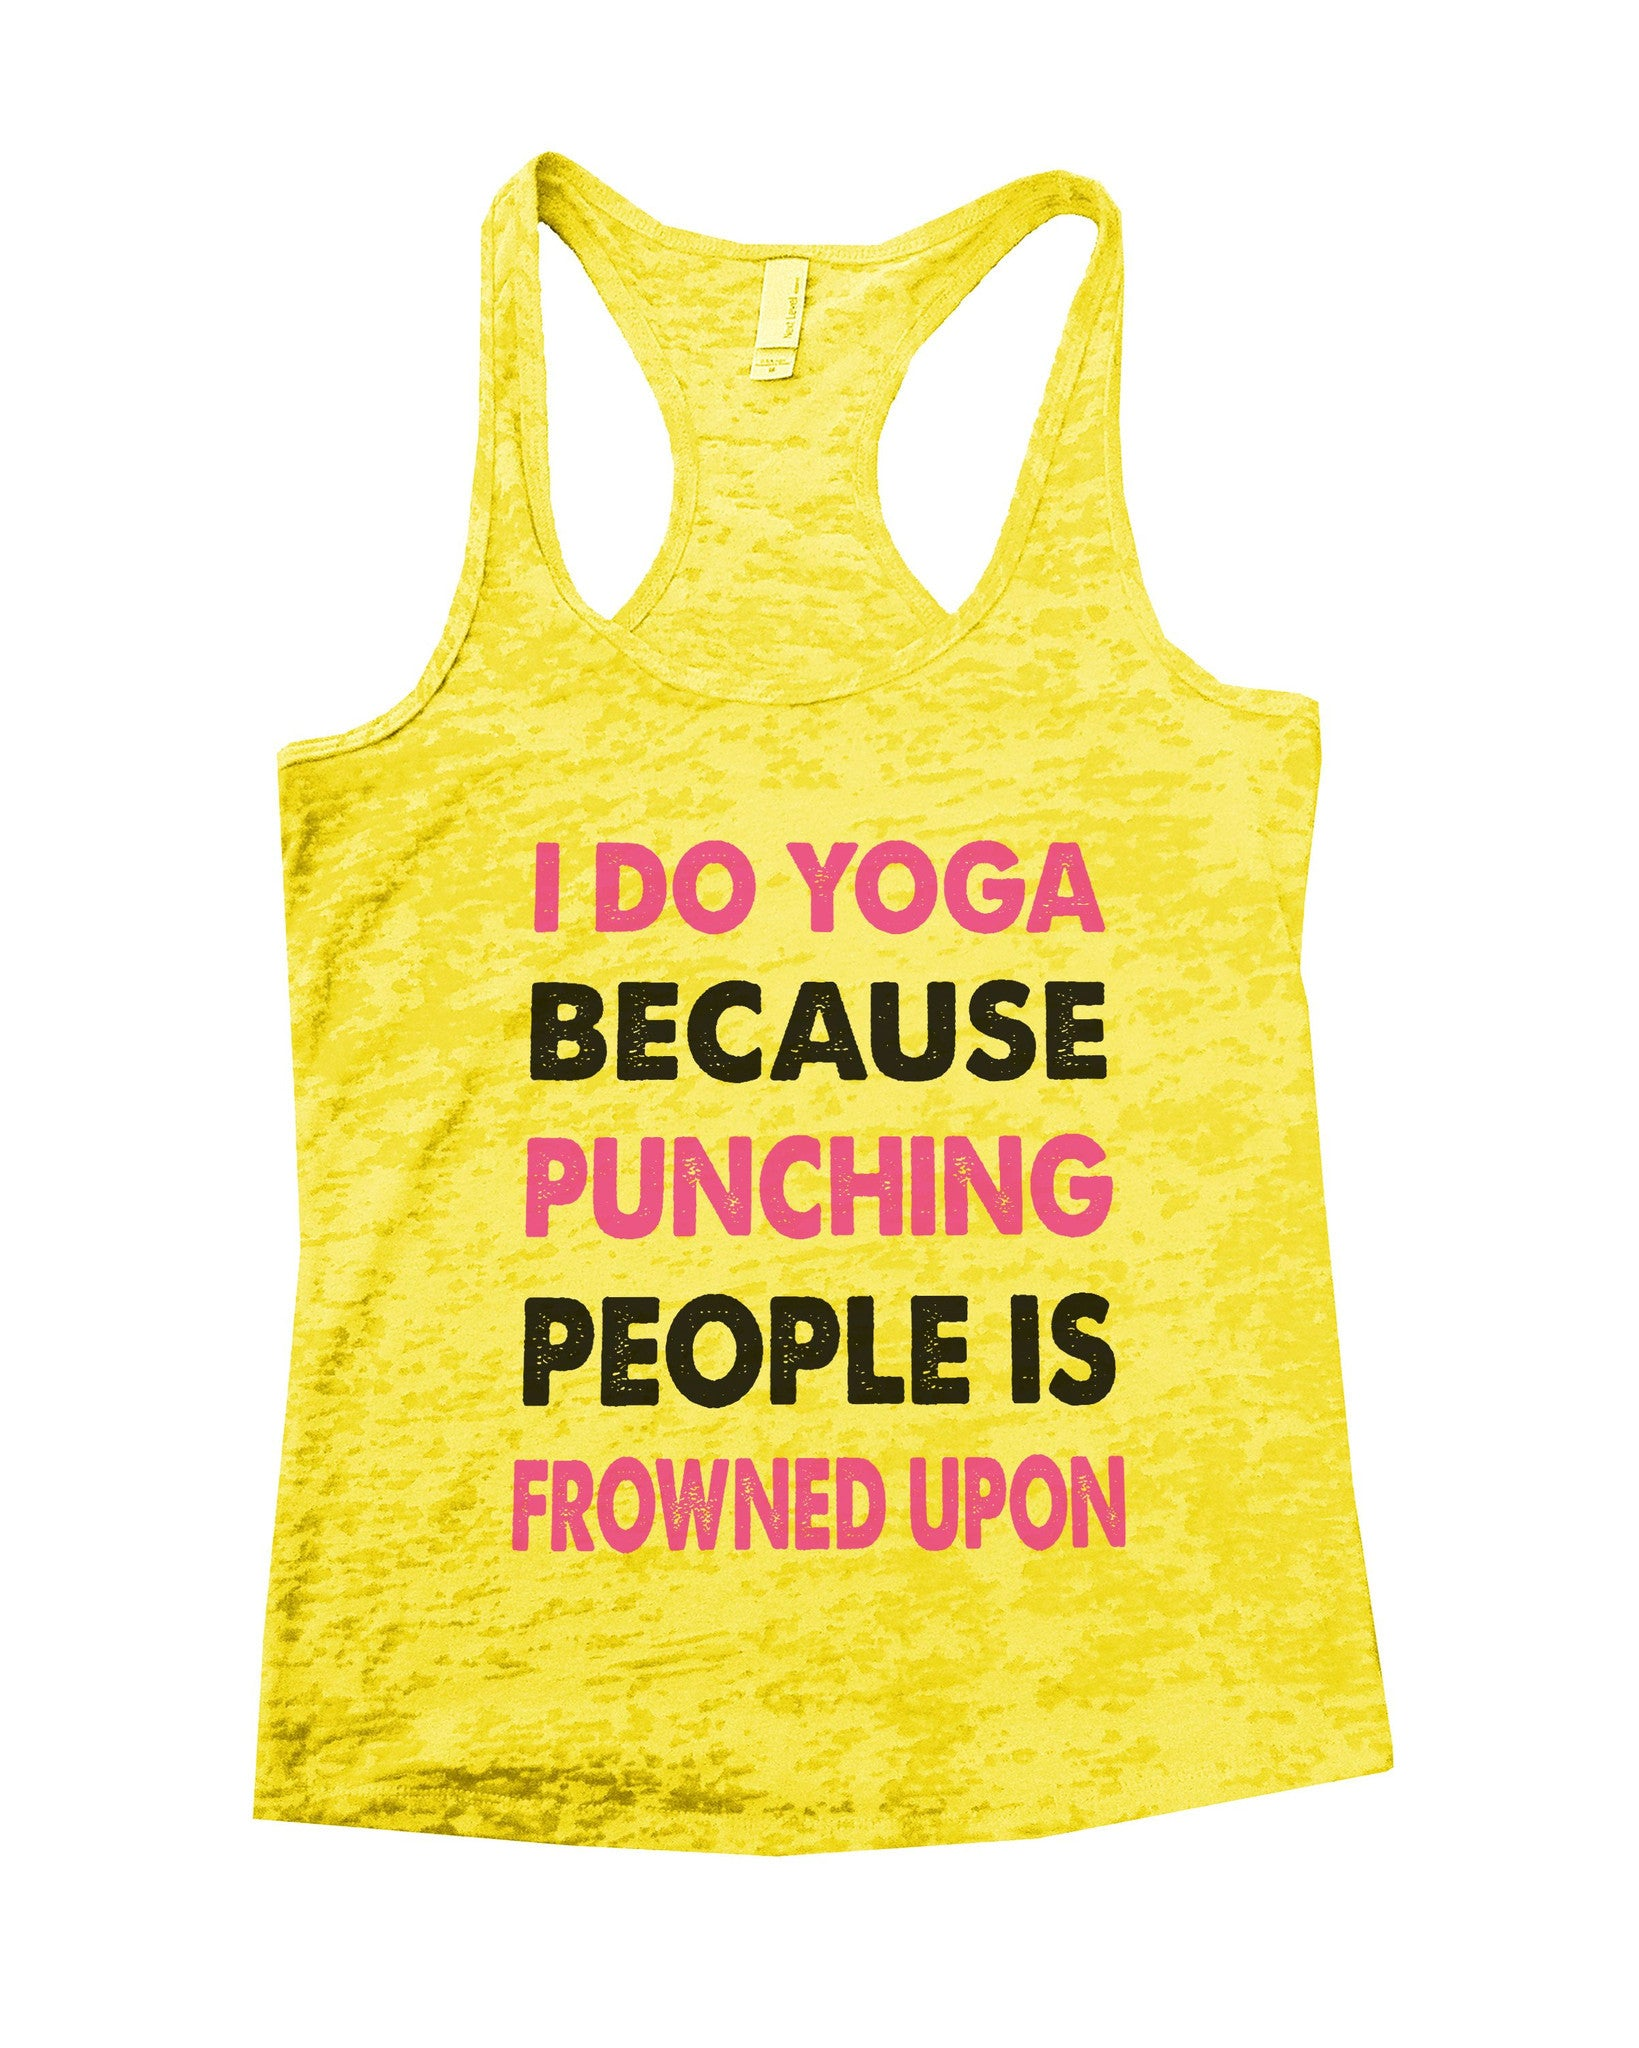 I Do Yoga Because Punching People Is Frowned Upon Burnout Tank Top By BurnoutTankTops.com - 685 - Funny Shirts Tank Tops Burnouts and Triblends  - 5